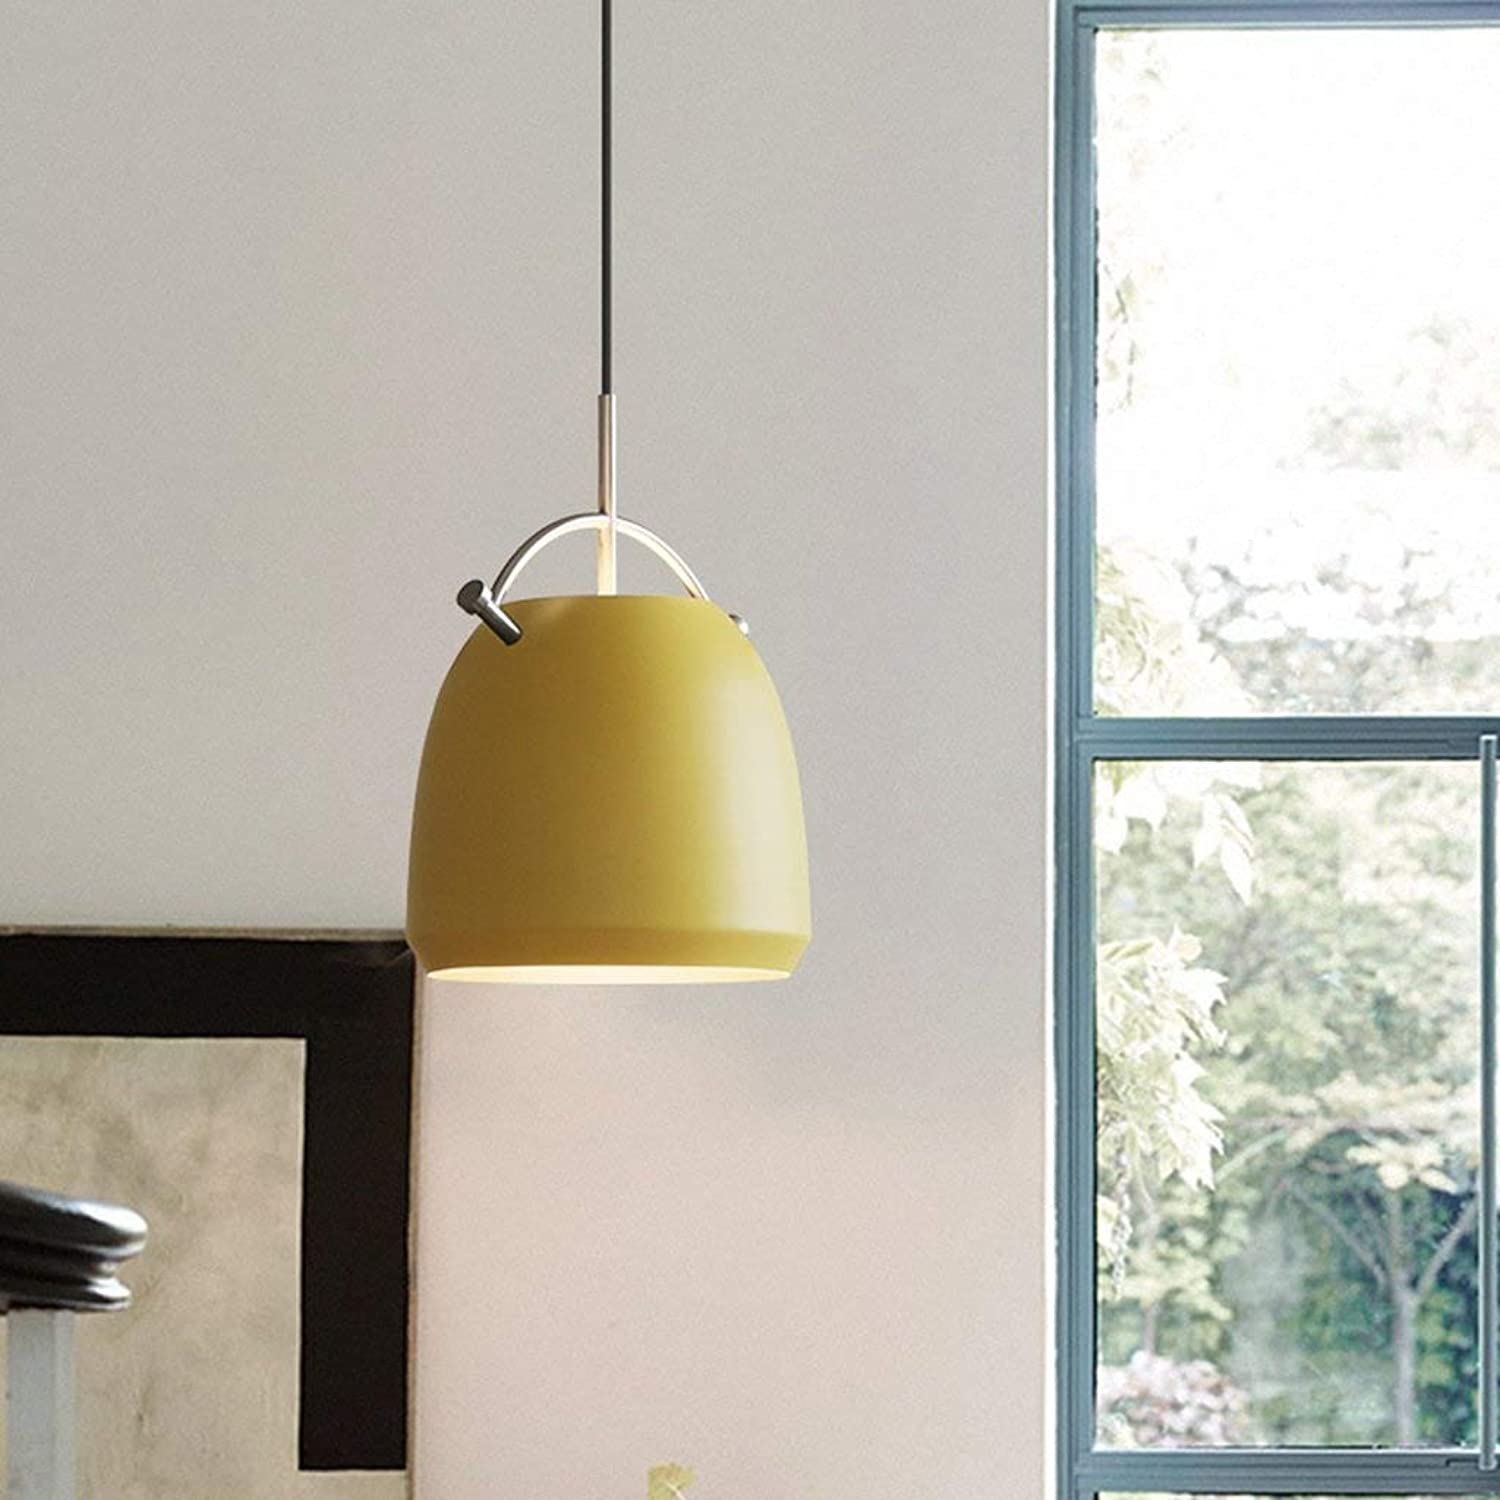 WHKHY Irons Chandelier Neutral, Gorgeous Optional, 34  50 cm, Chrome Hook Single Head Chandelier